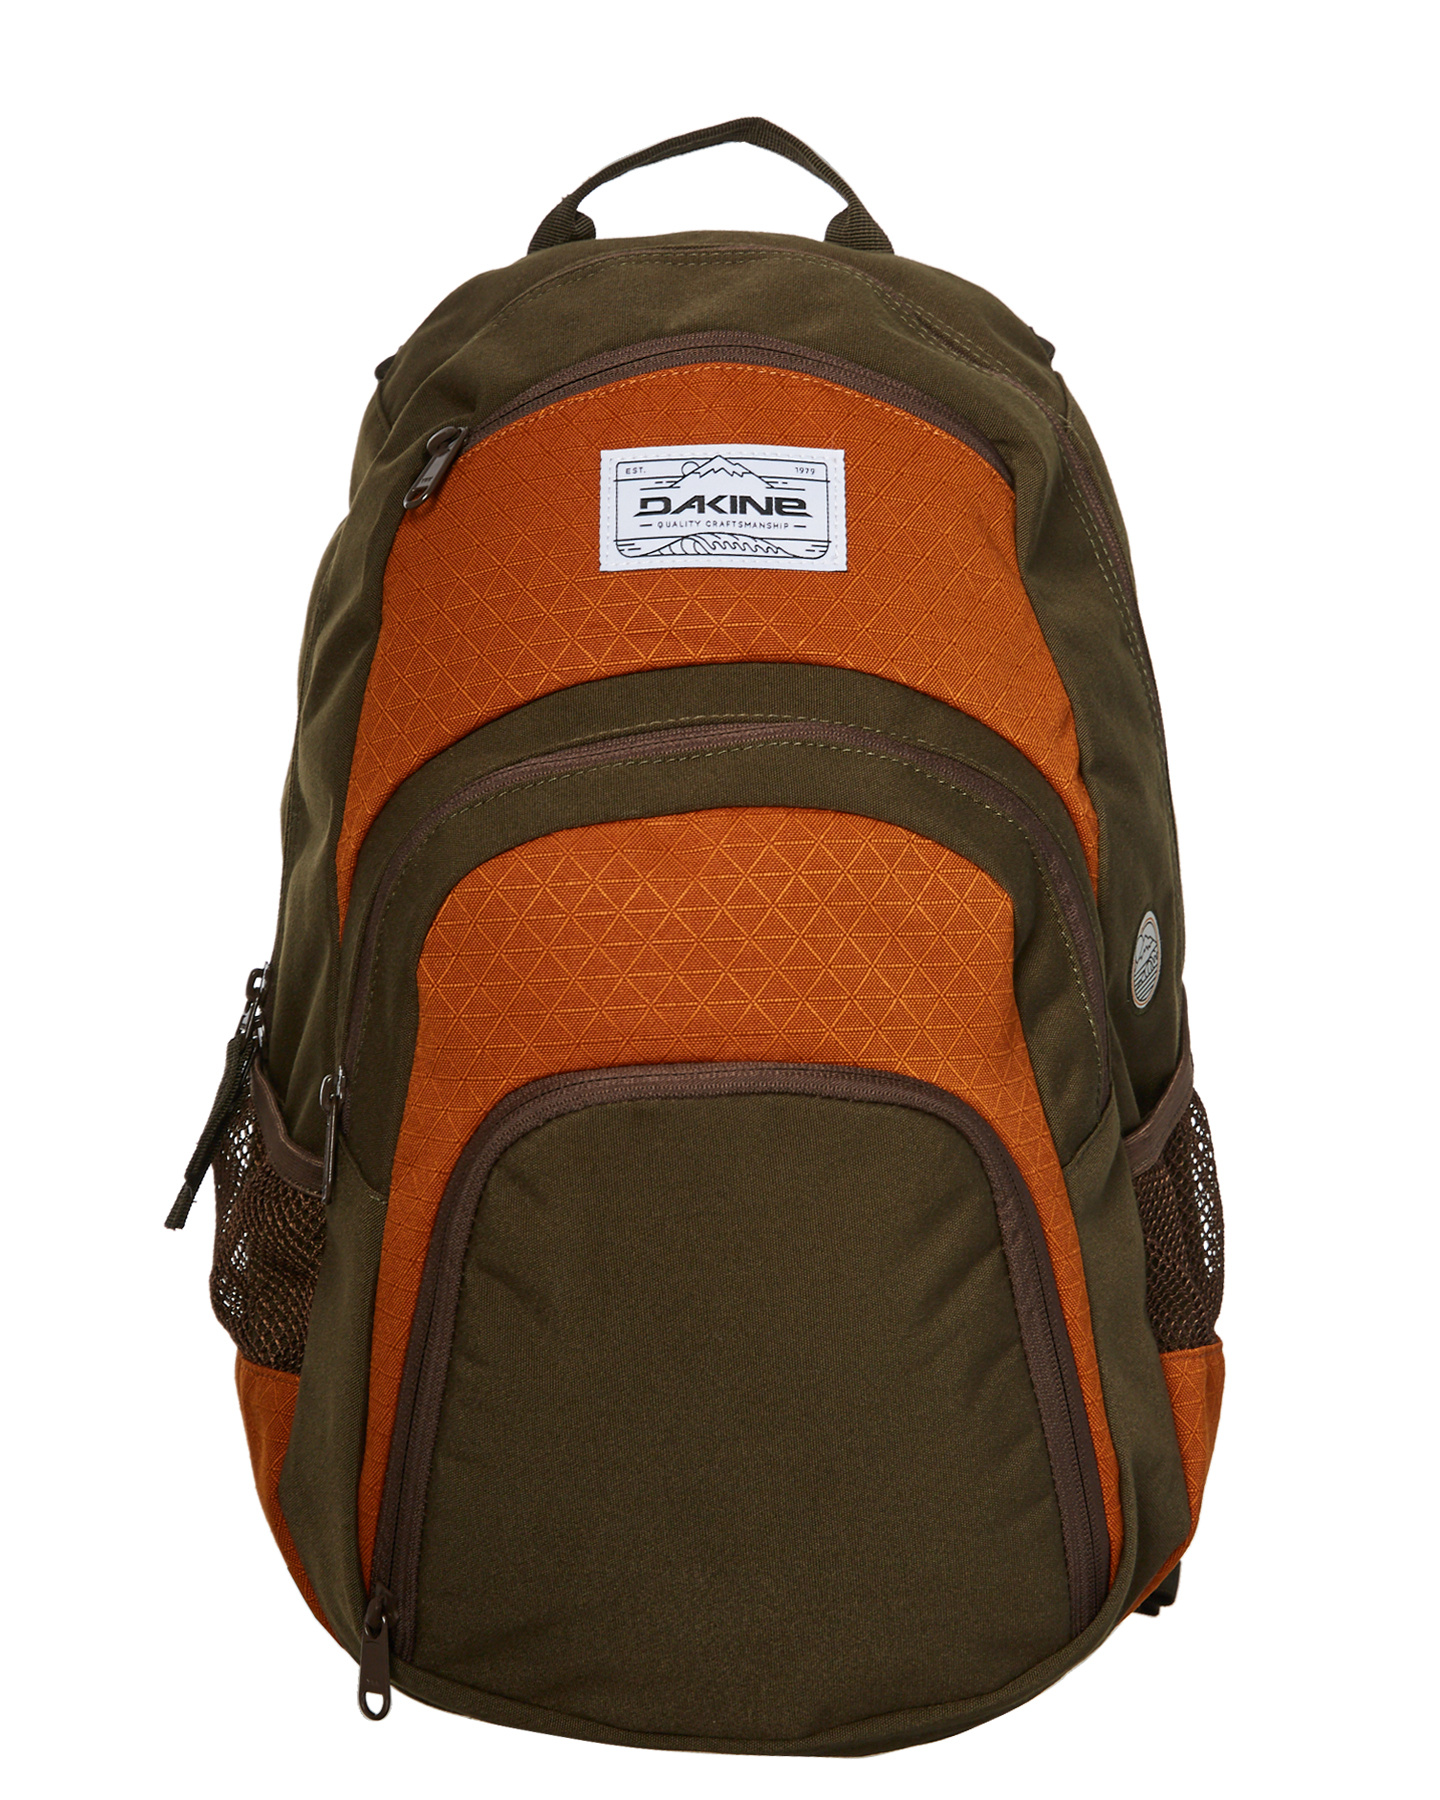 Dakine Toddler Backpack- Fenix Toulouse Handball 14b9848a3c58a